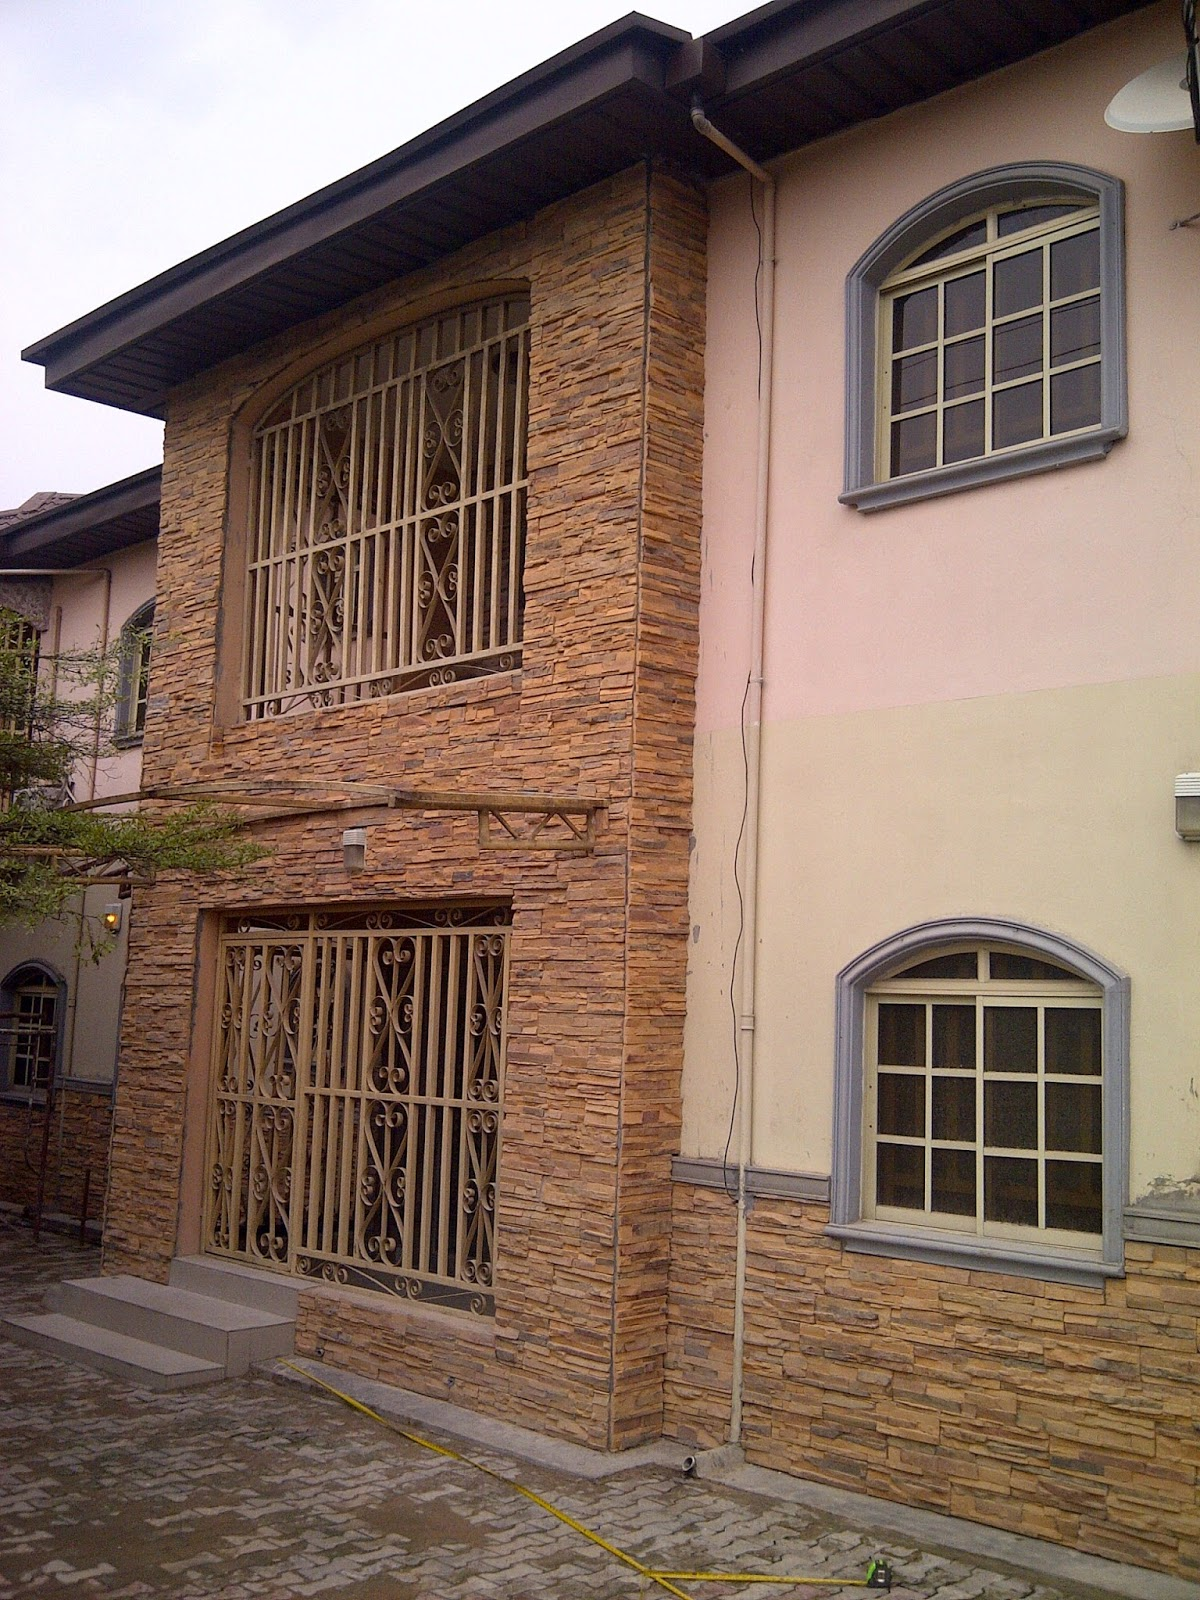 Ez fit stones done at Owerri Nigeria